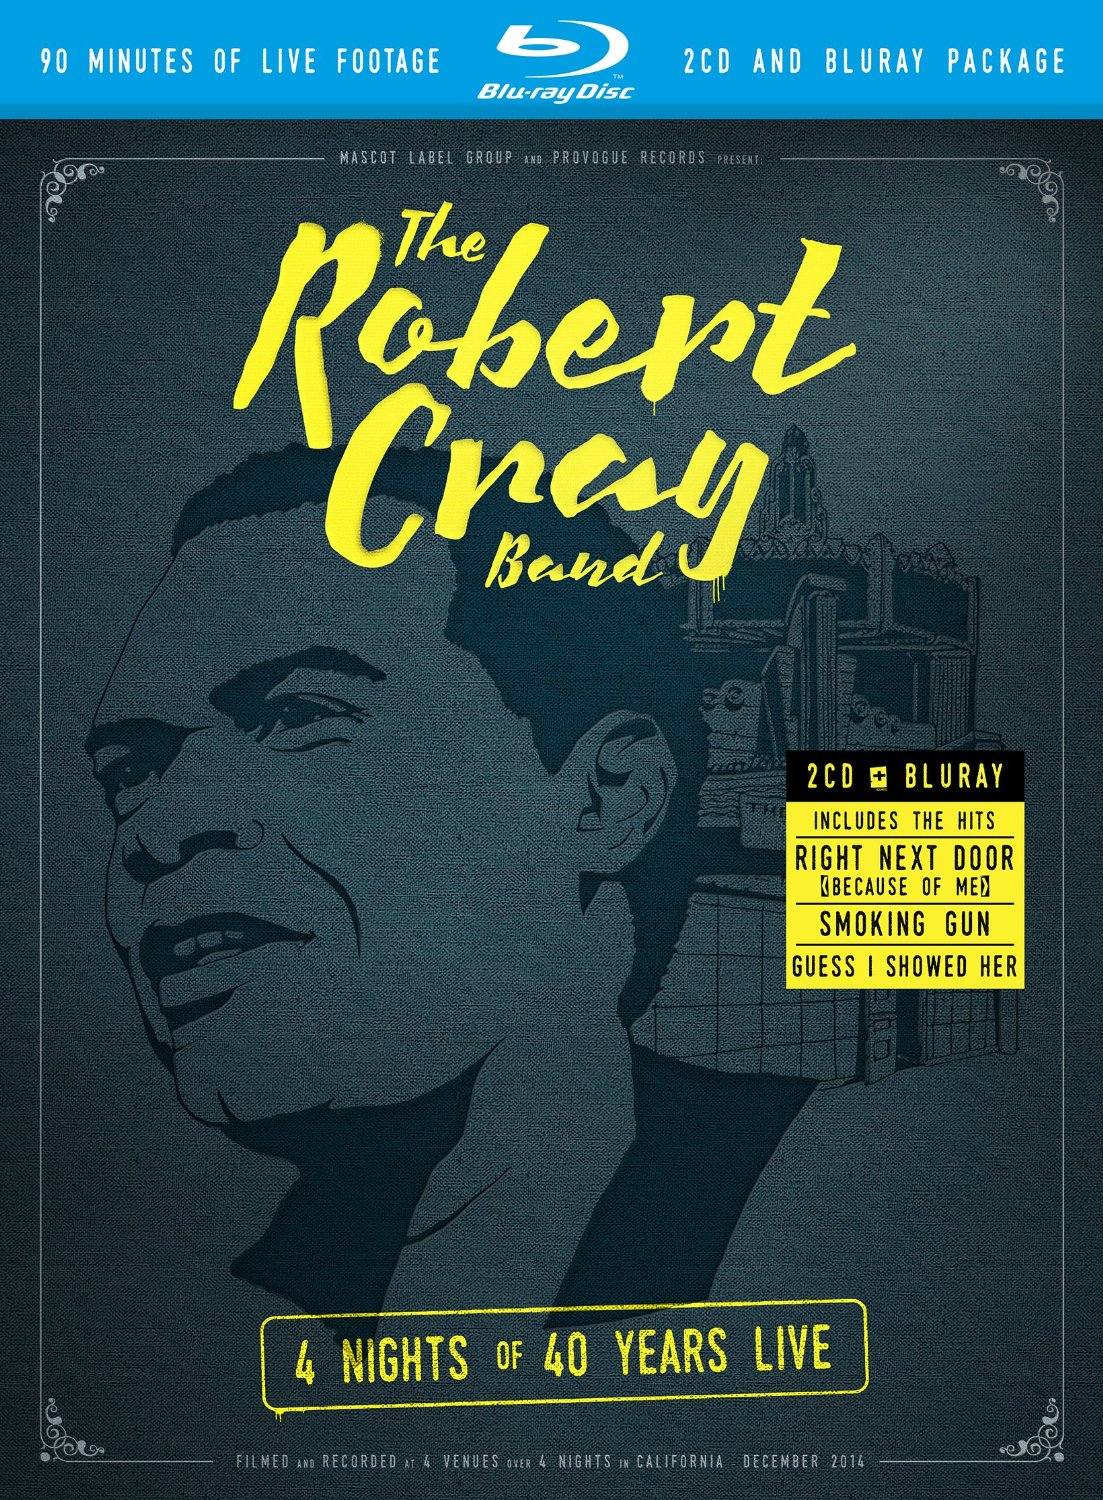 Robert Cray - 4 Nights Of 40 Years Live [2CD + Blu-ray]